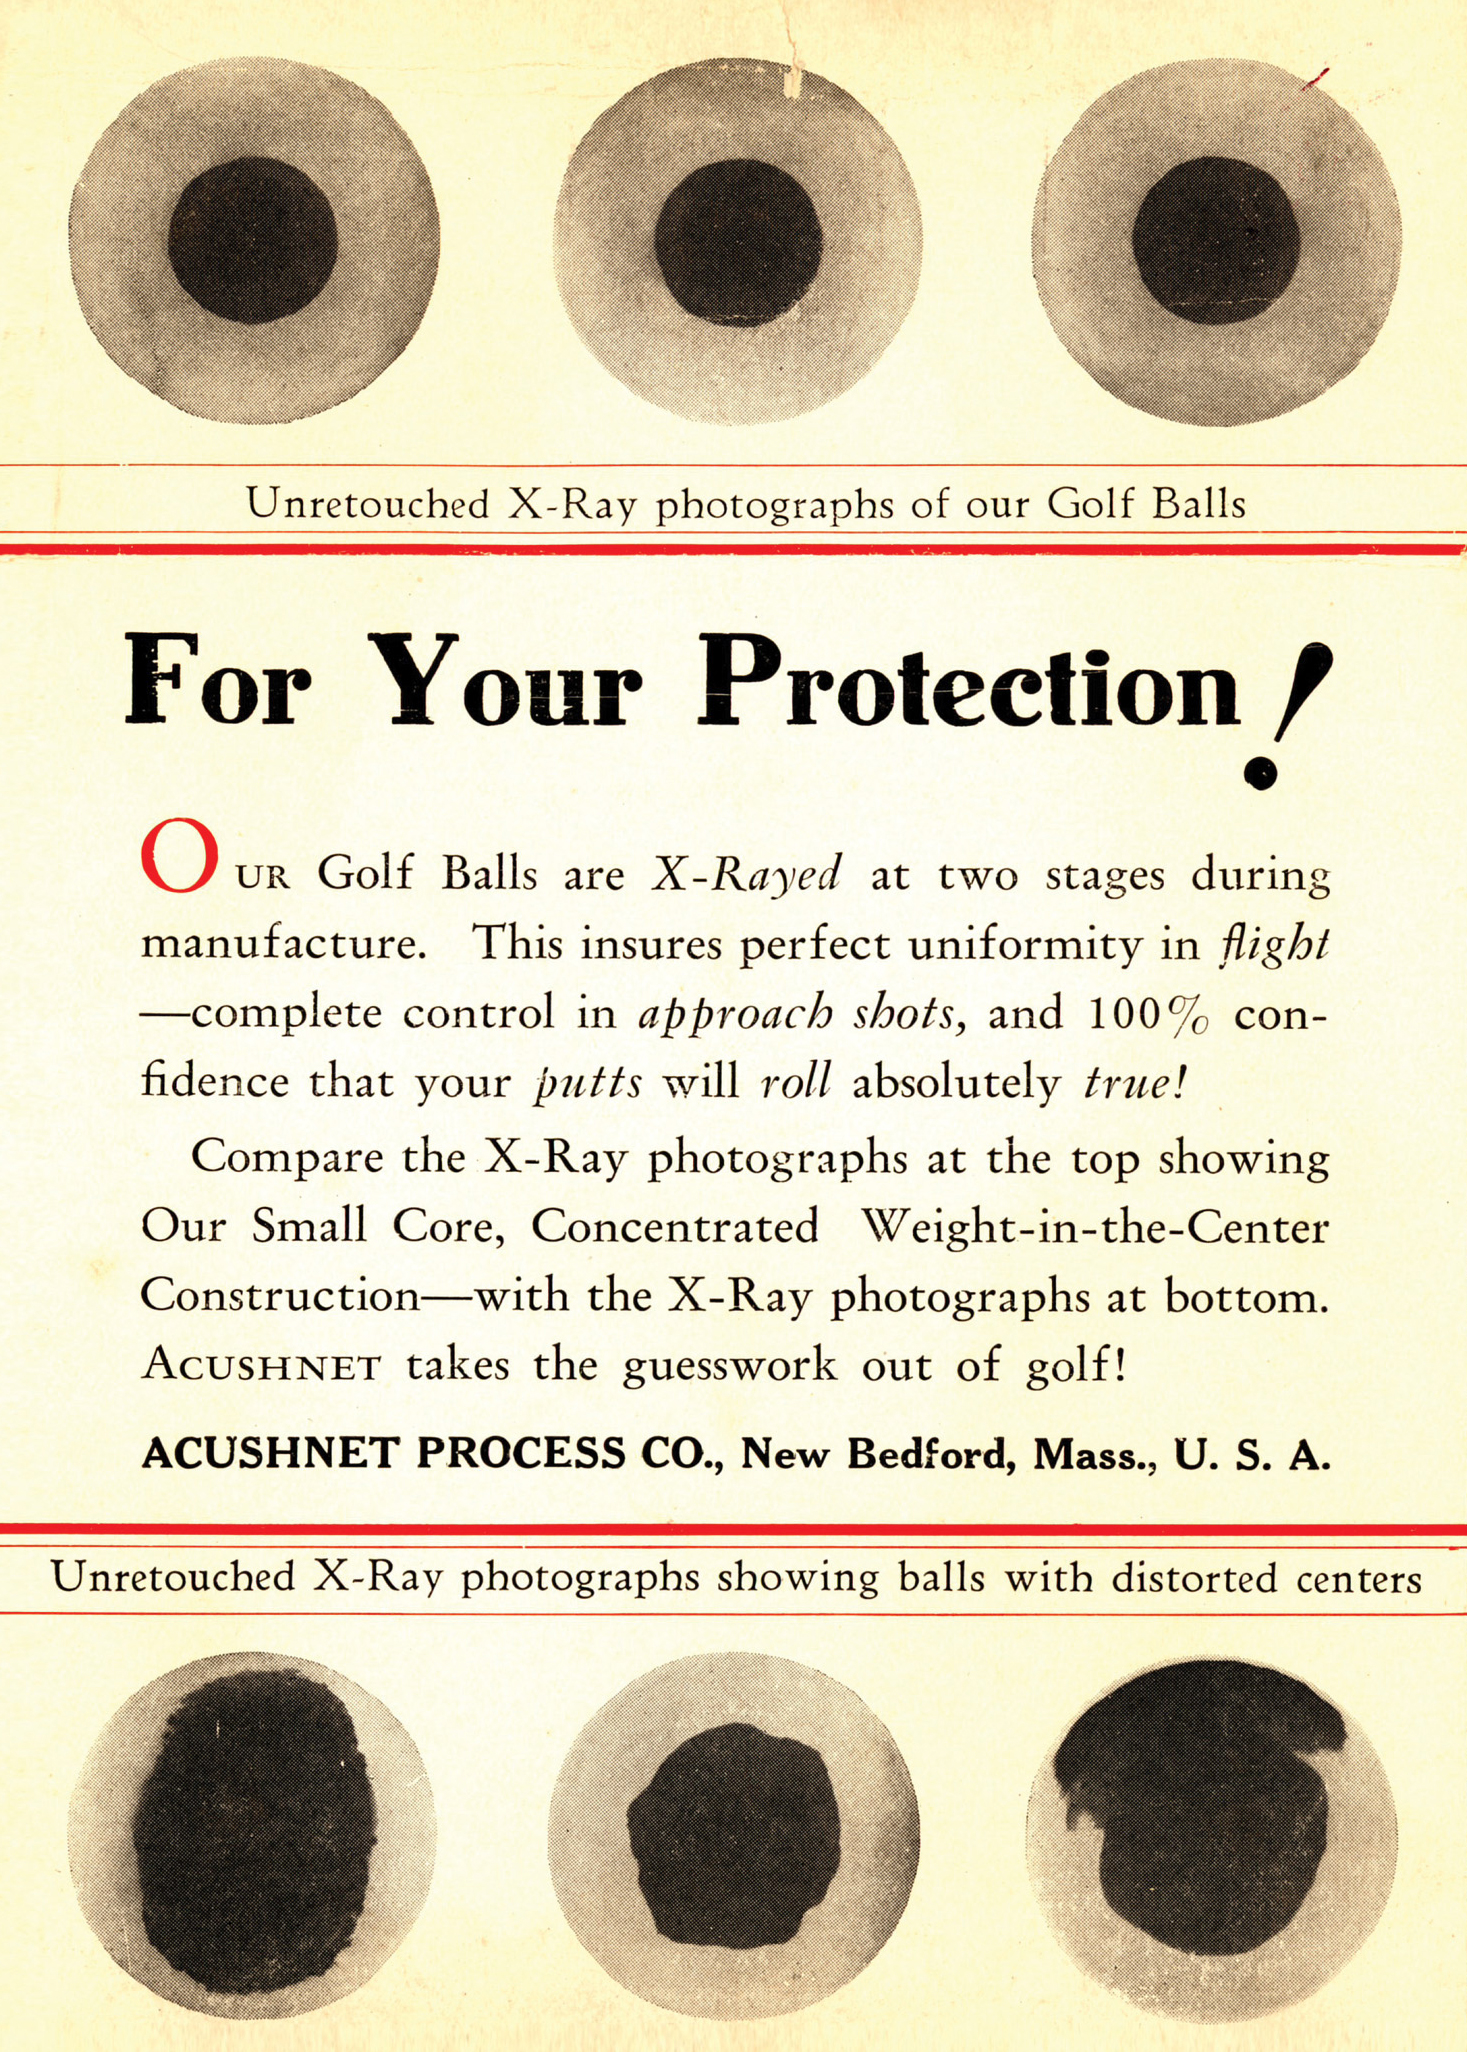 Titleist becomes the first brand to X-Ray every golf ball in 1935 (Photo: Titleist)